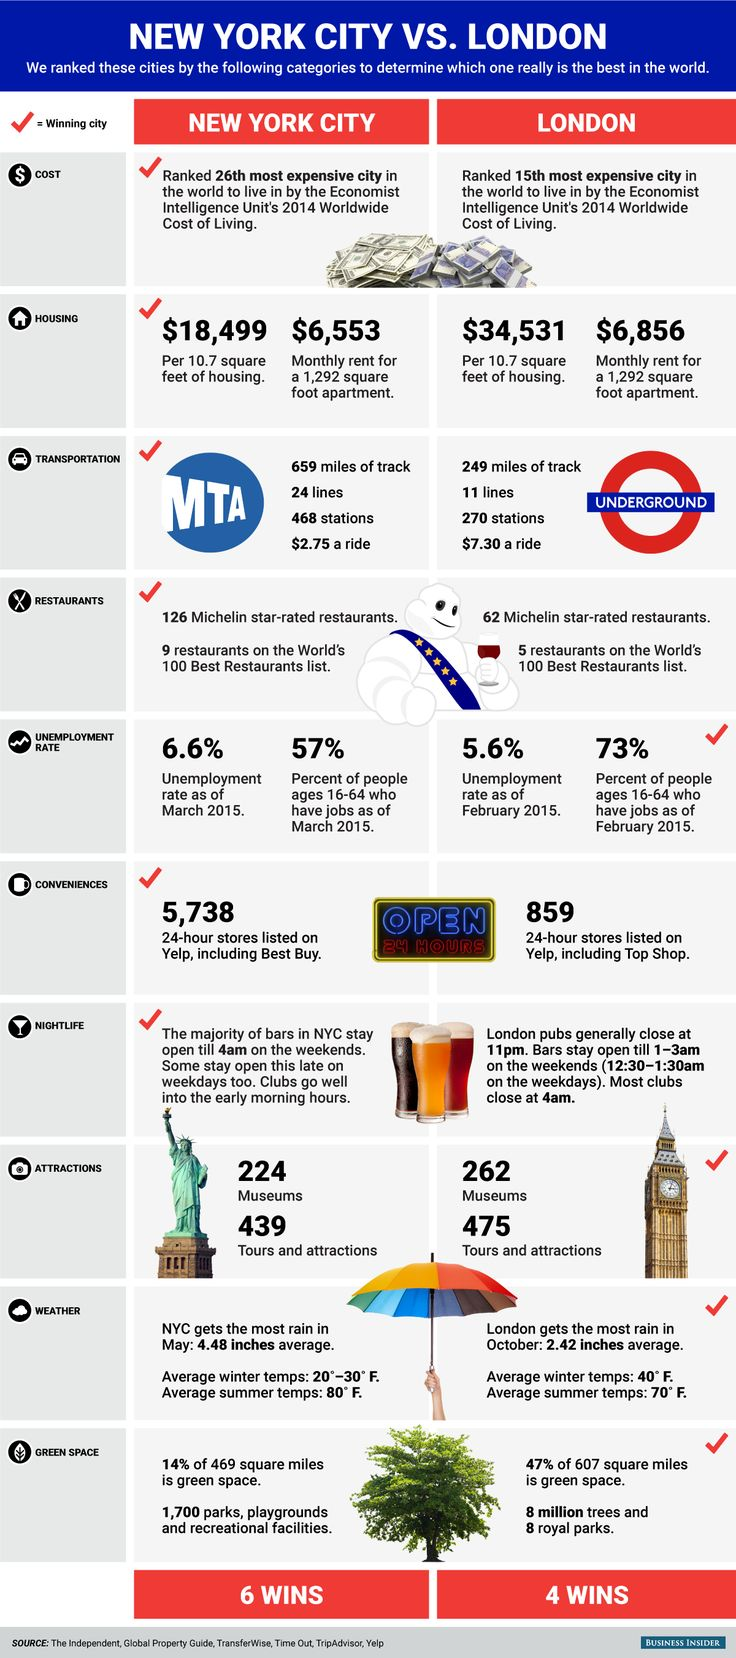 NEW YORK CITY VS. LONDON: Which is Really the best city in the world? #infographic #NewYork #London #Travel #RealEstate